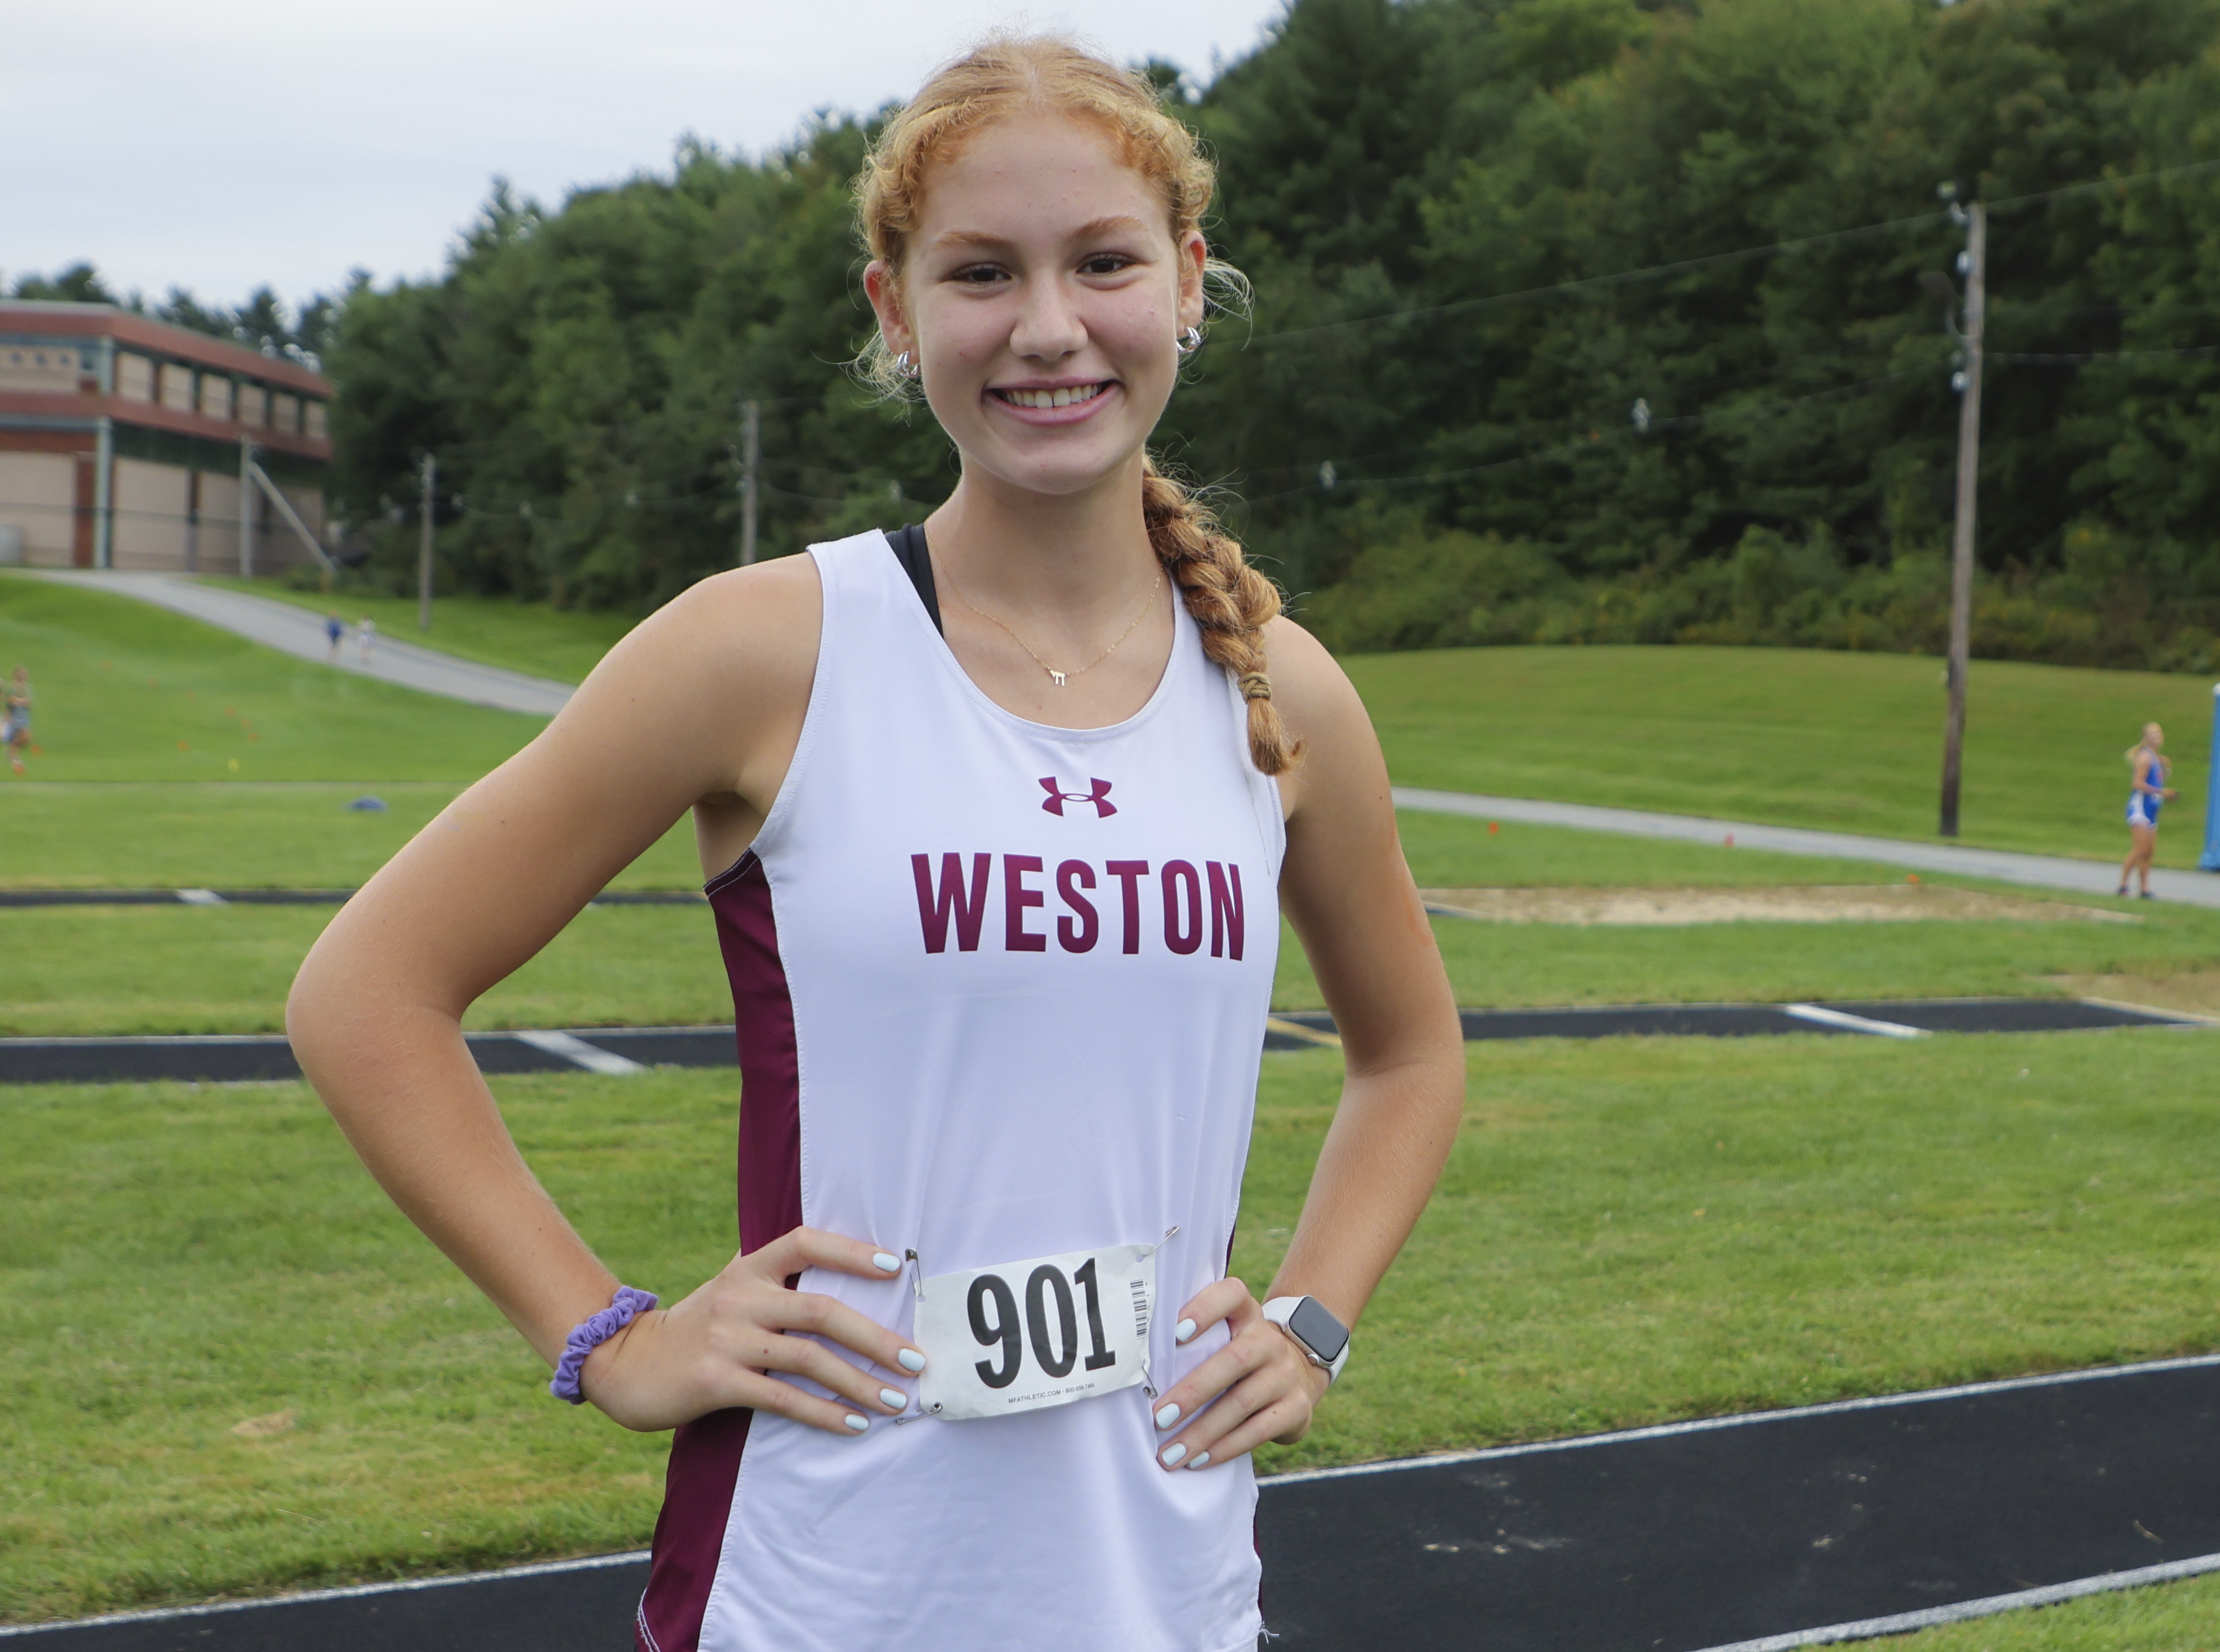 After a strong performance on the track at the All-State Meeting in the spring, Weston senior Julie Hohenberg is attracting interest from Division 1 colleges in New England.